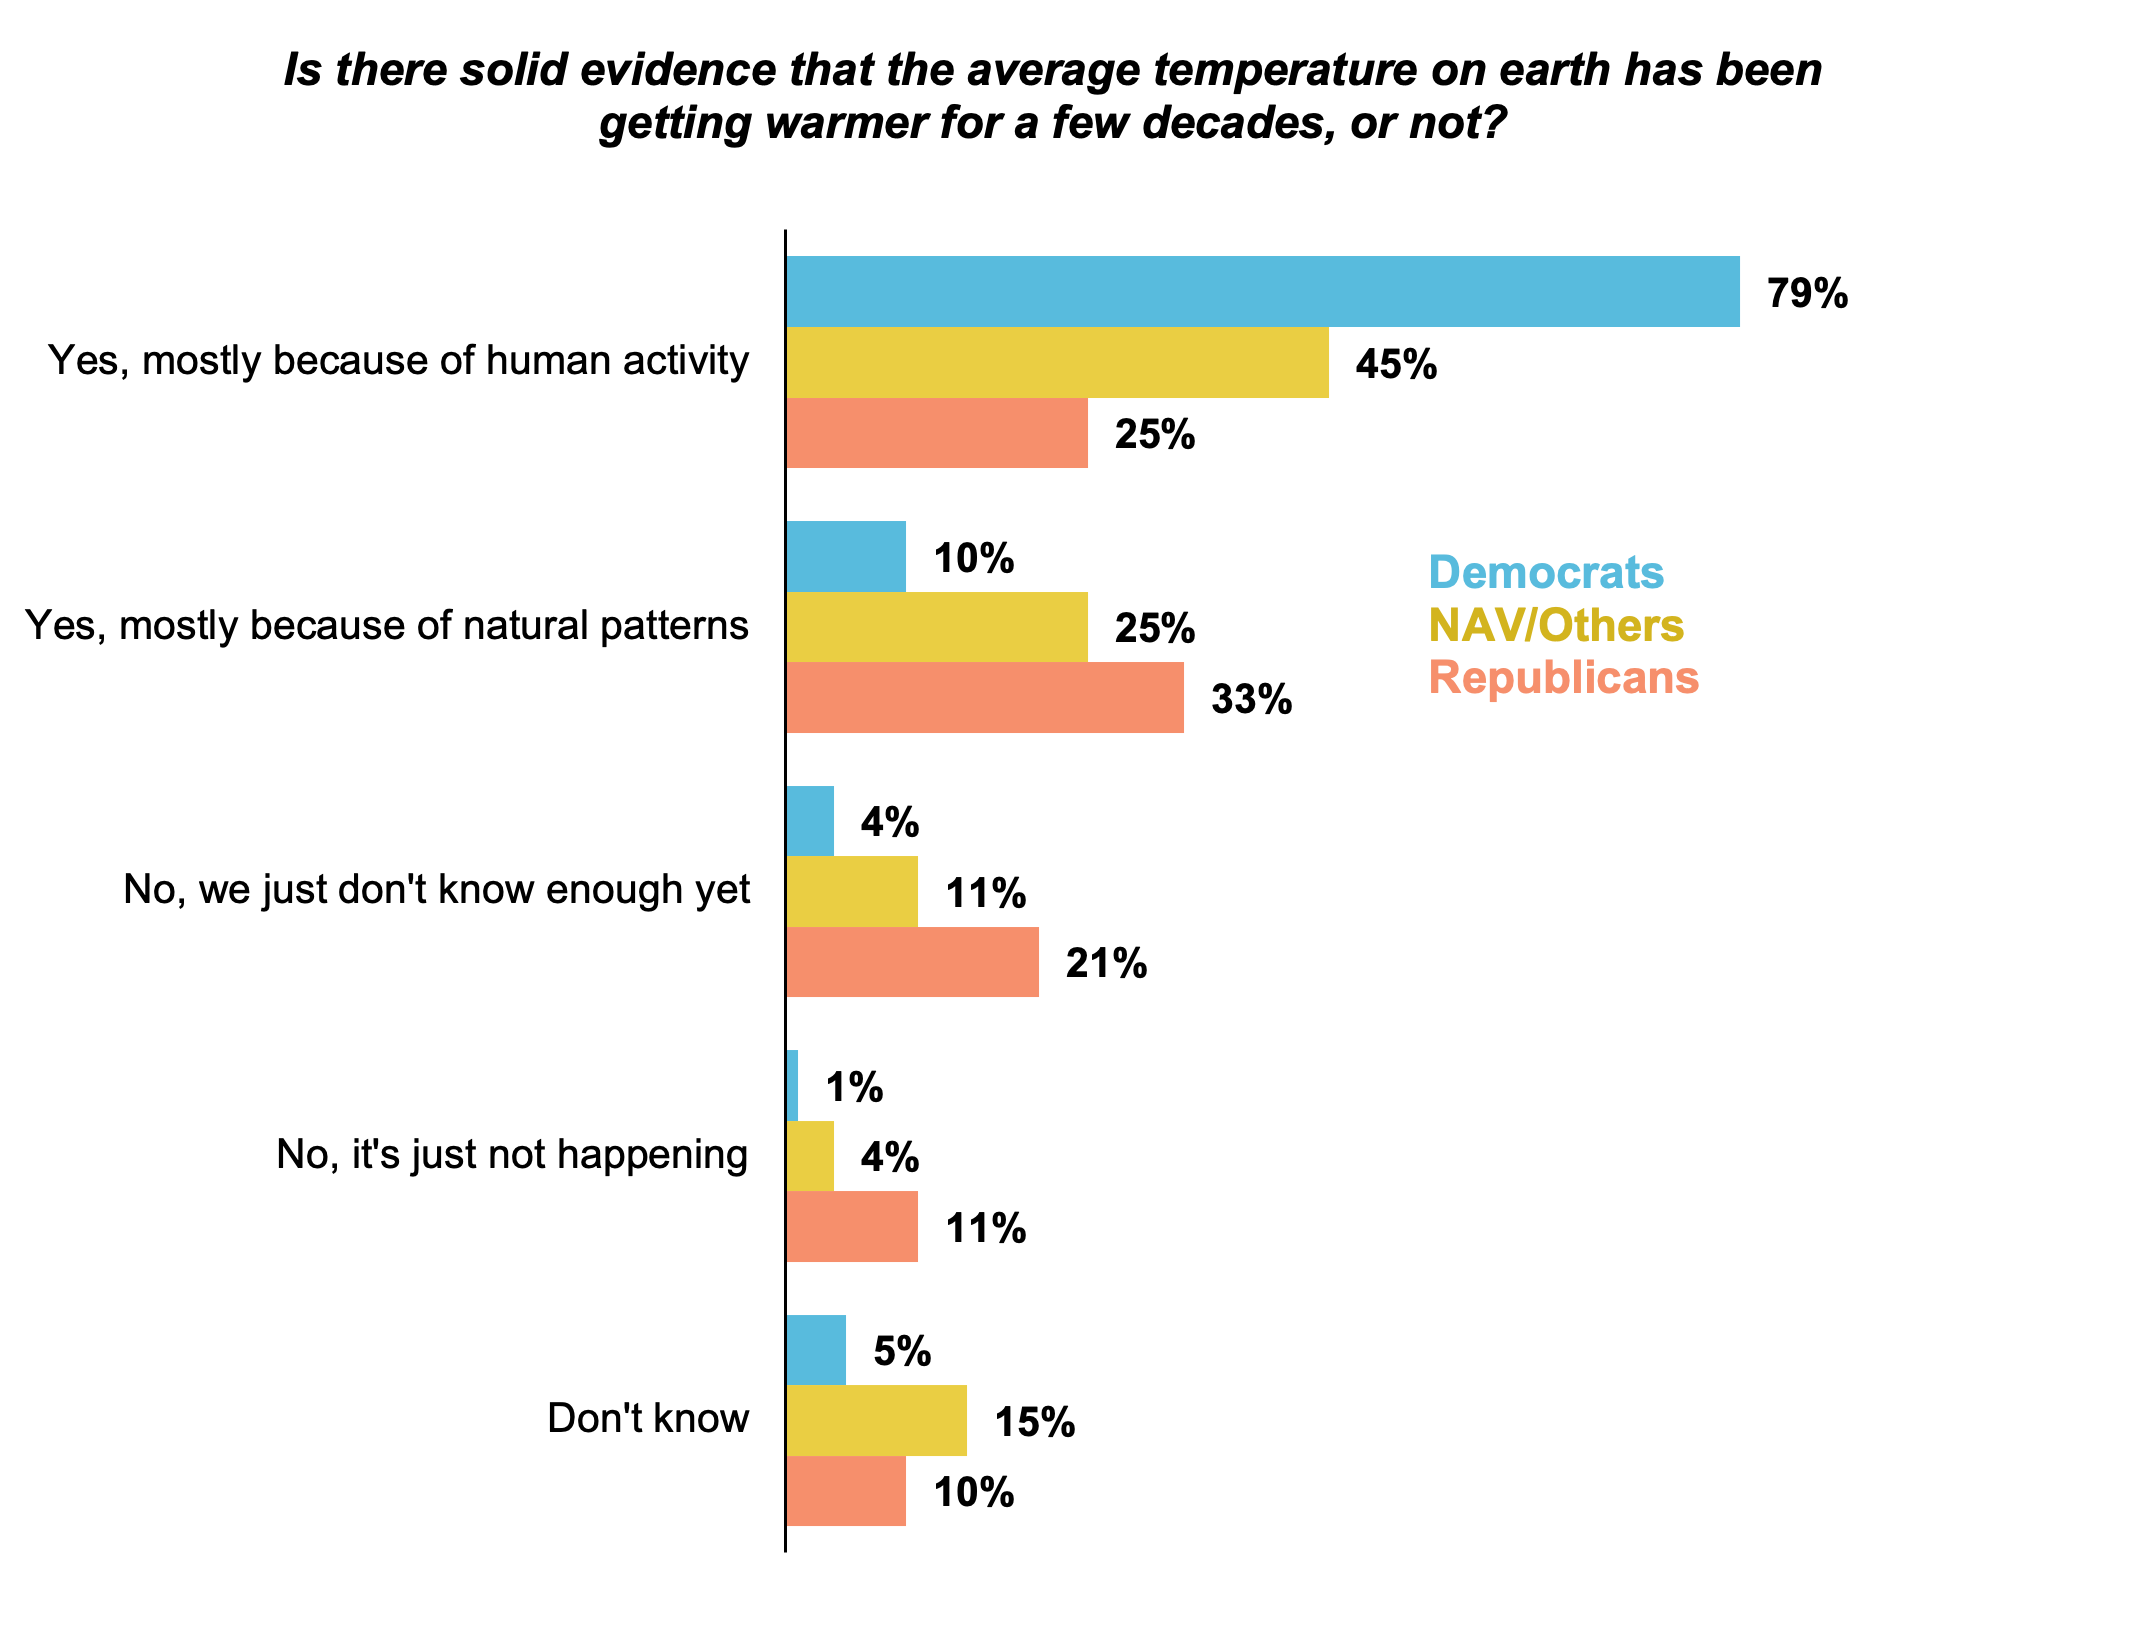 Bar graph results from asking Oregon residents if there is solid evidence that the temperature on Earth has been getting warmer for a few decades or not. Separated by political association.